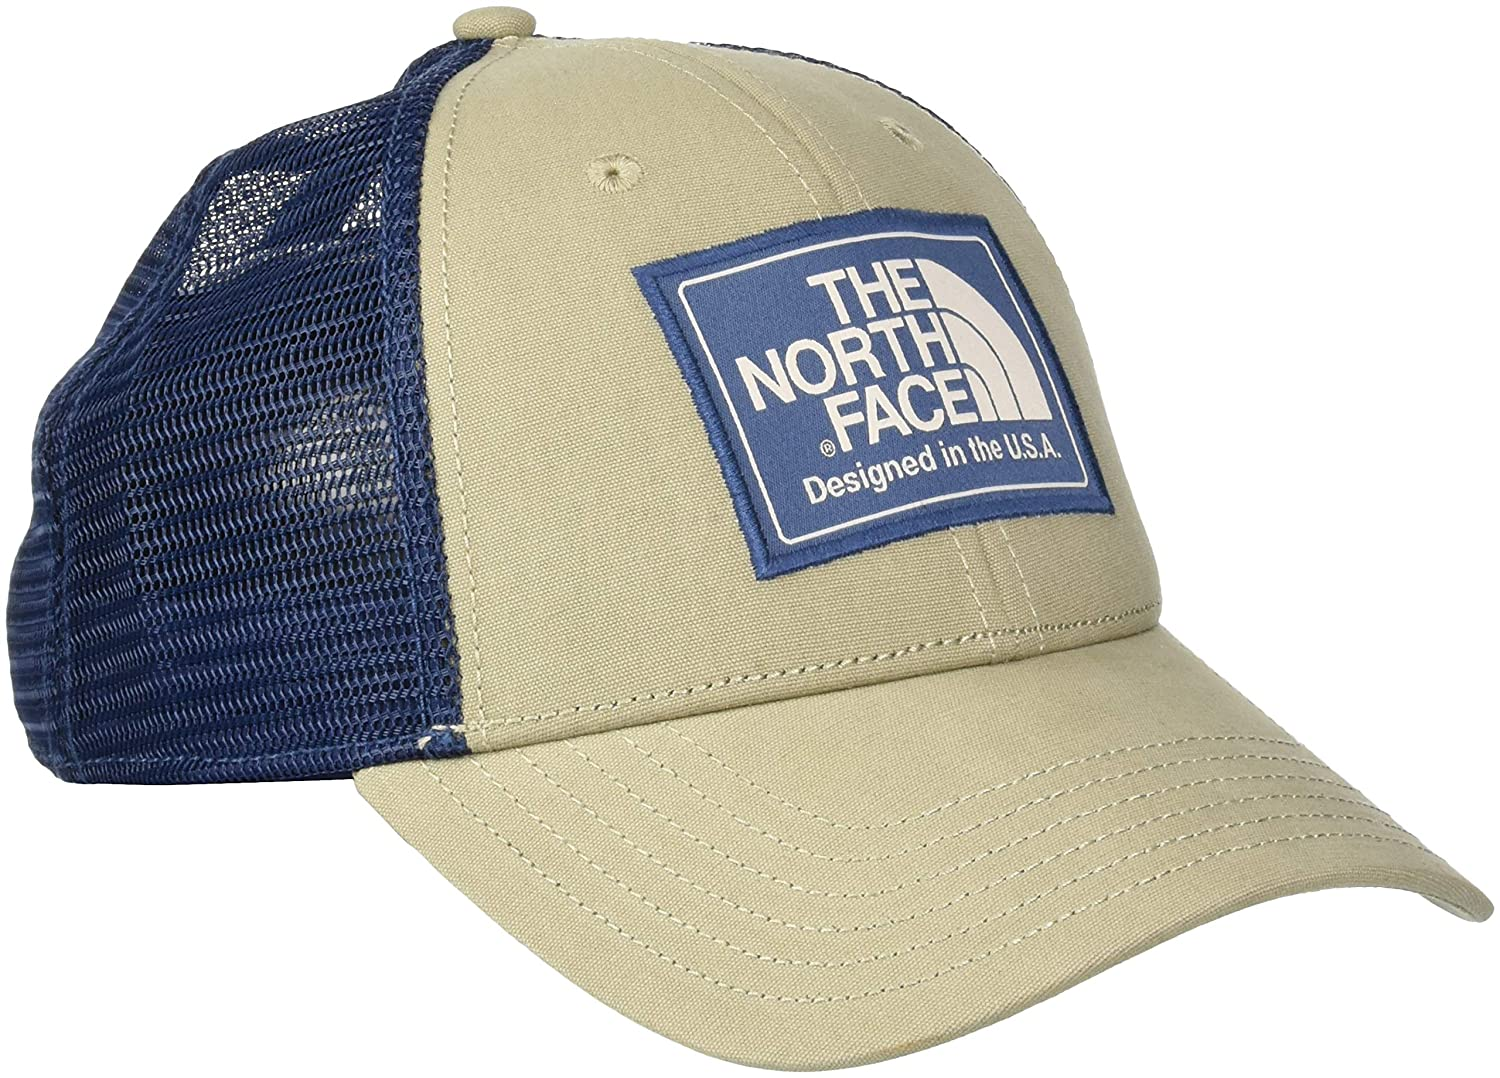 THE NORTH FACE Men s Mudder Trucker Hat e5e7491dcf17